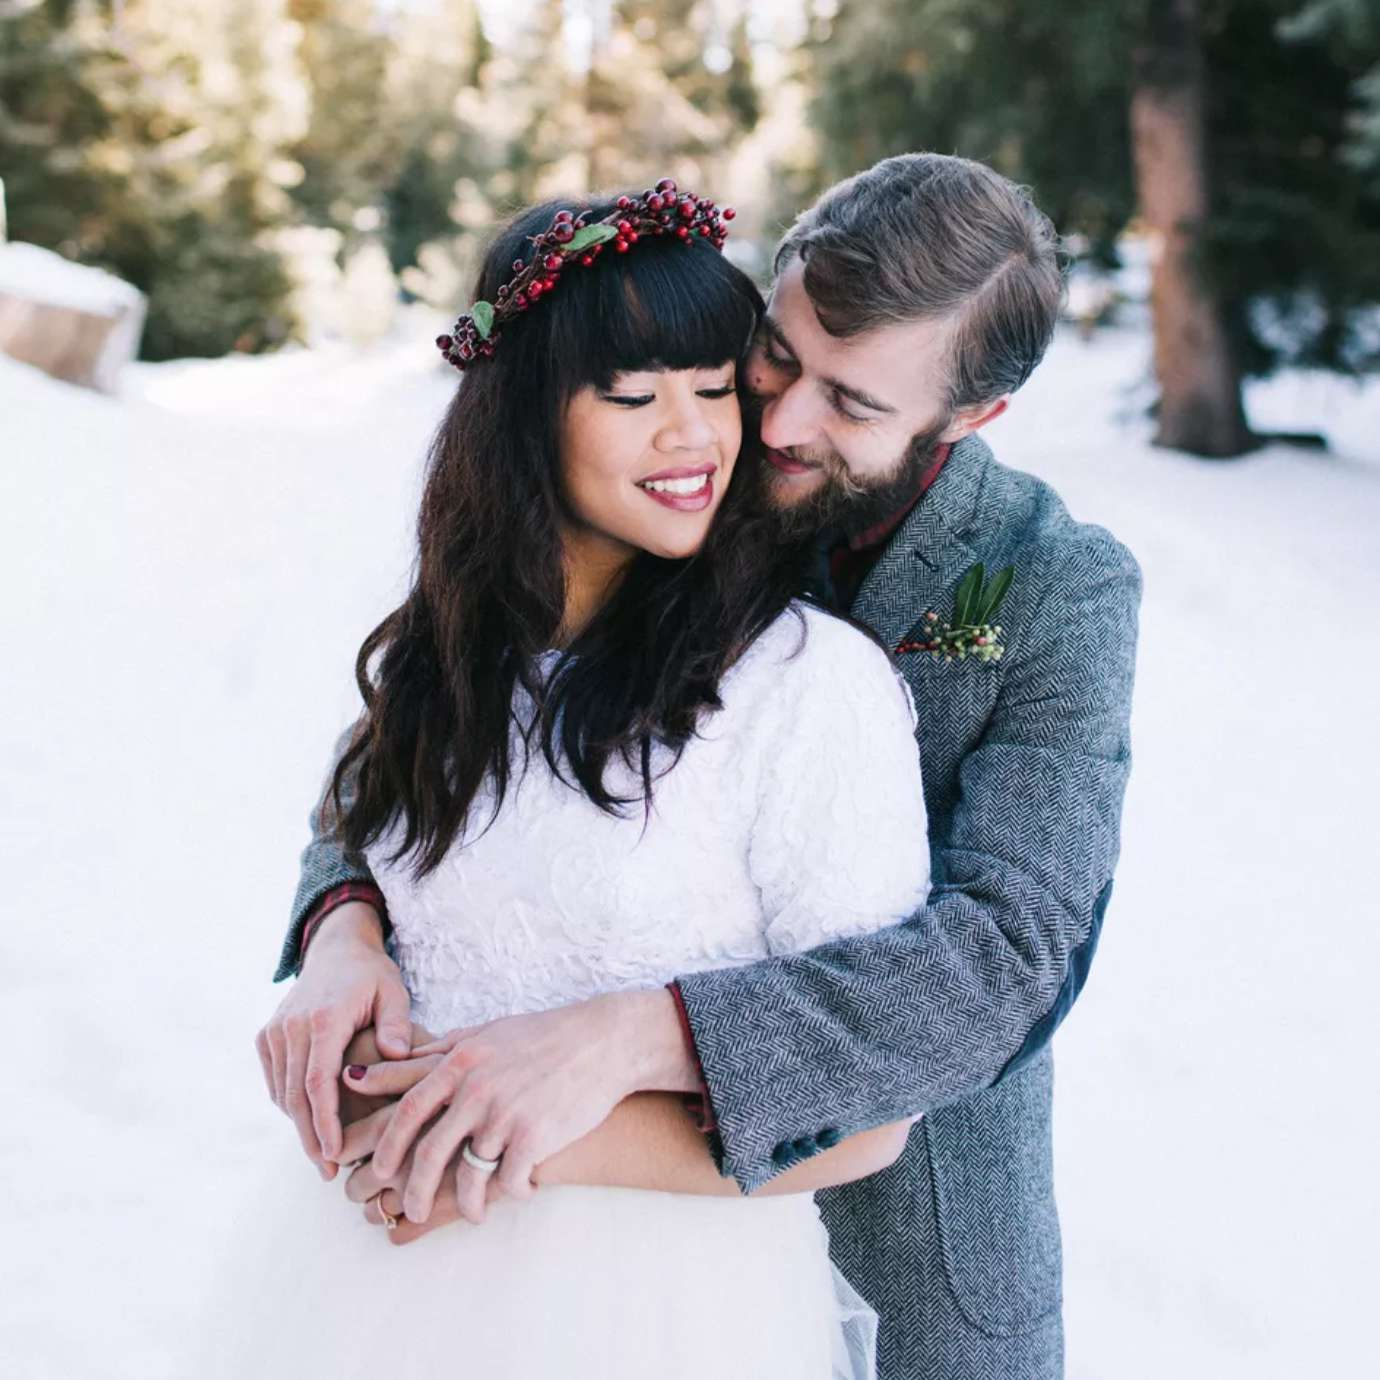 Newlyweds embracing in the snow